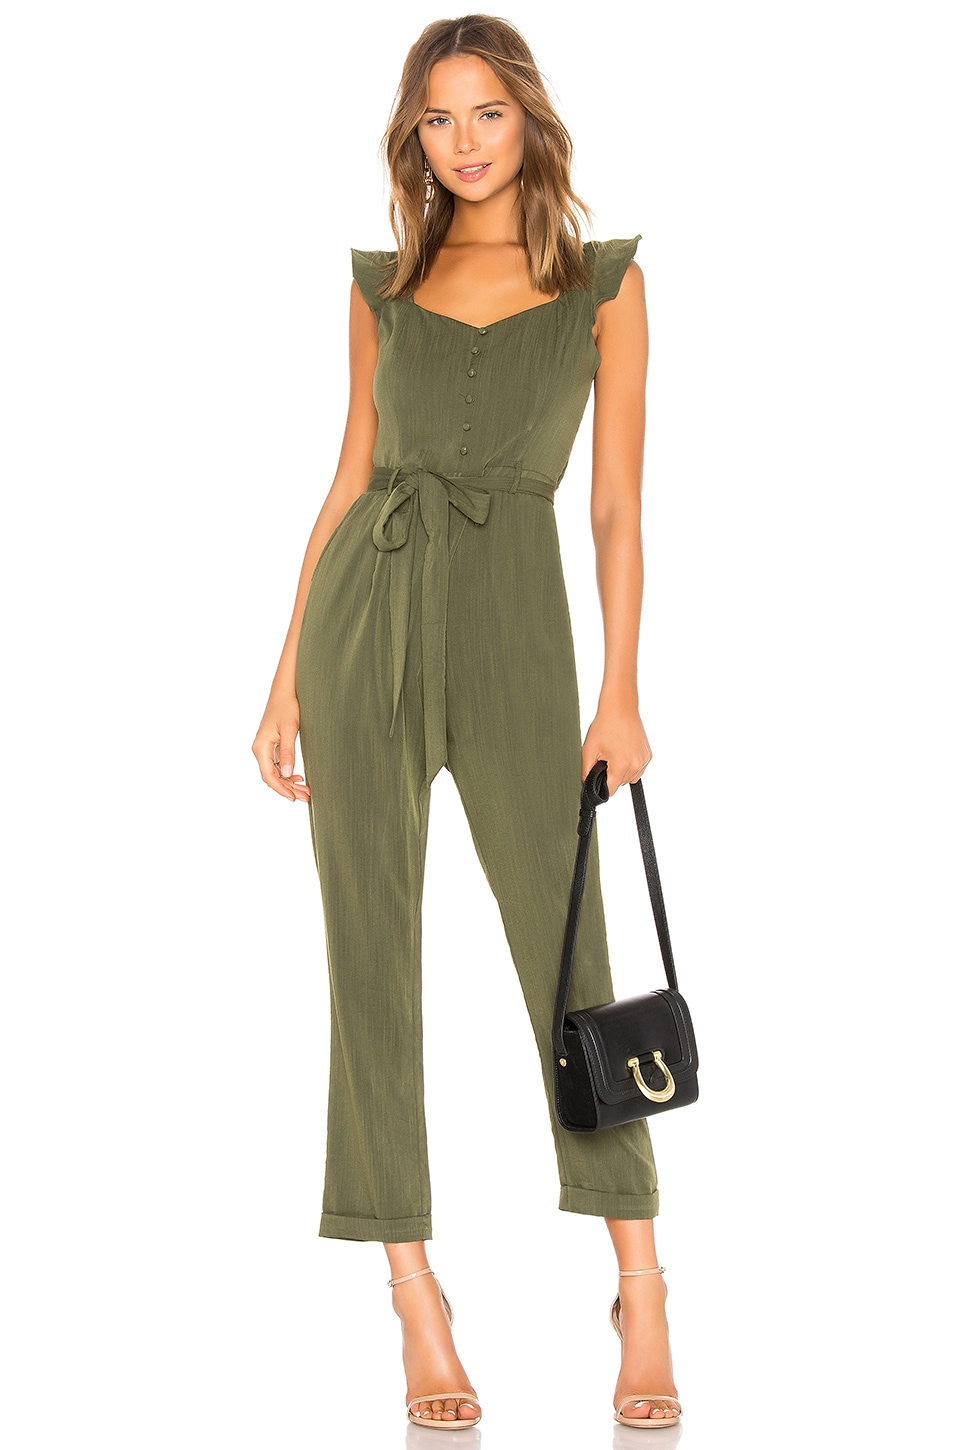 Heartloom HEARTLOOM ARWEN JUMPSUIT IN ARMY.